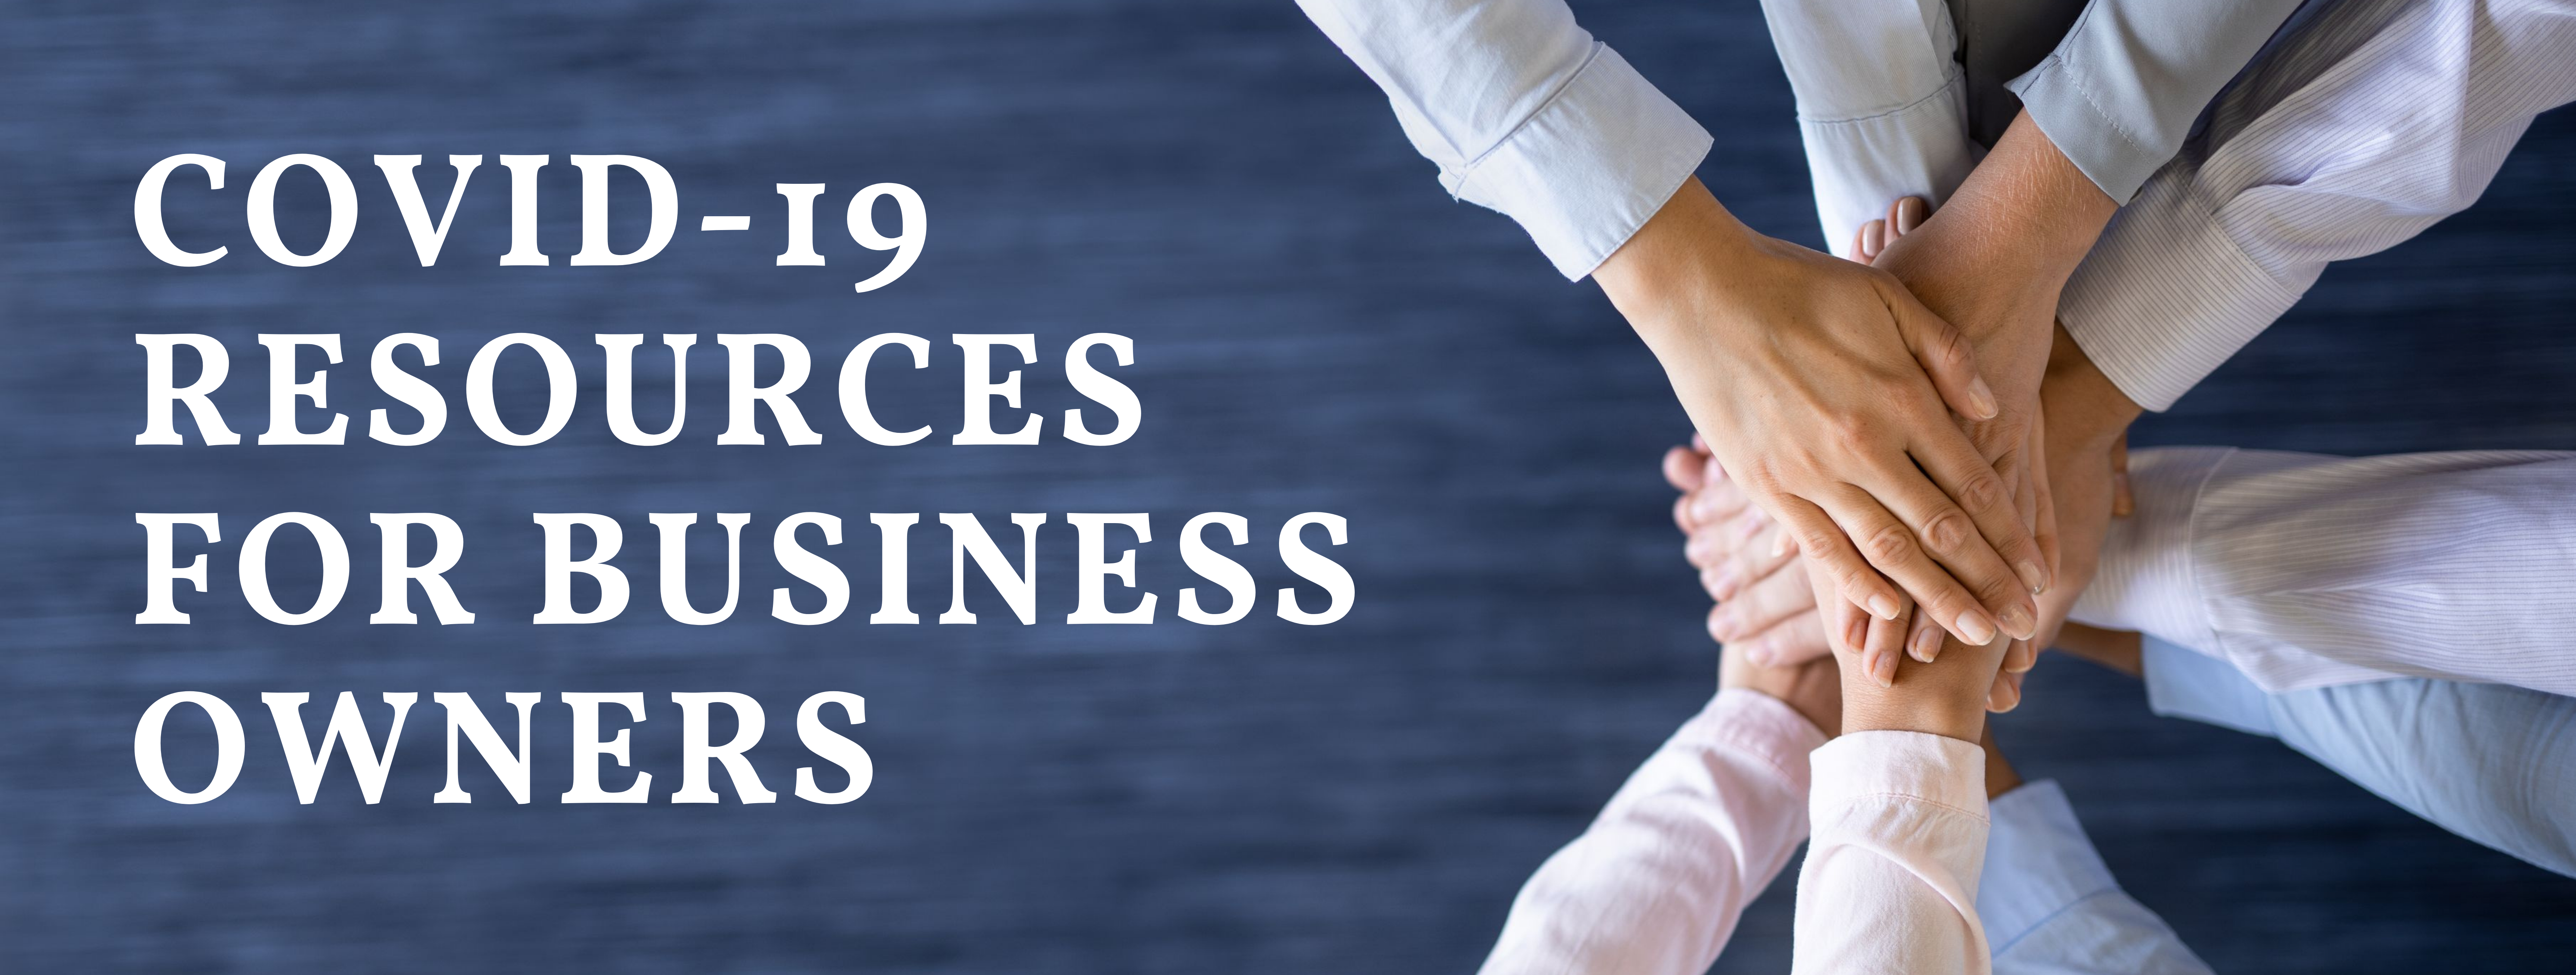 COVID-19 Resources for Business Owners